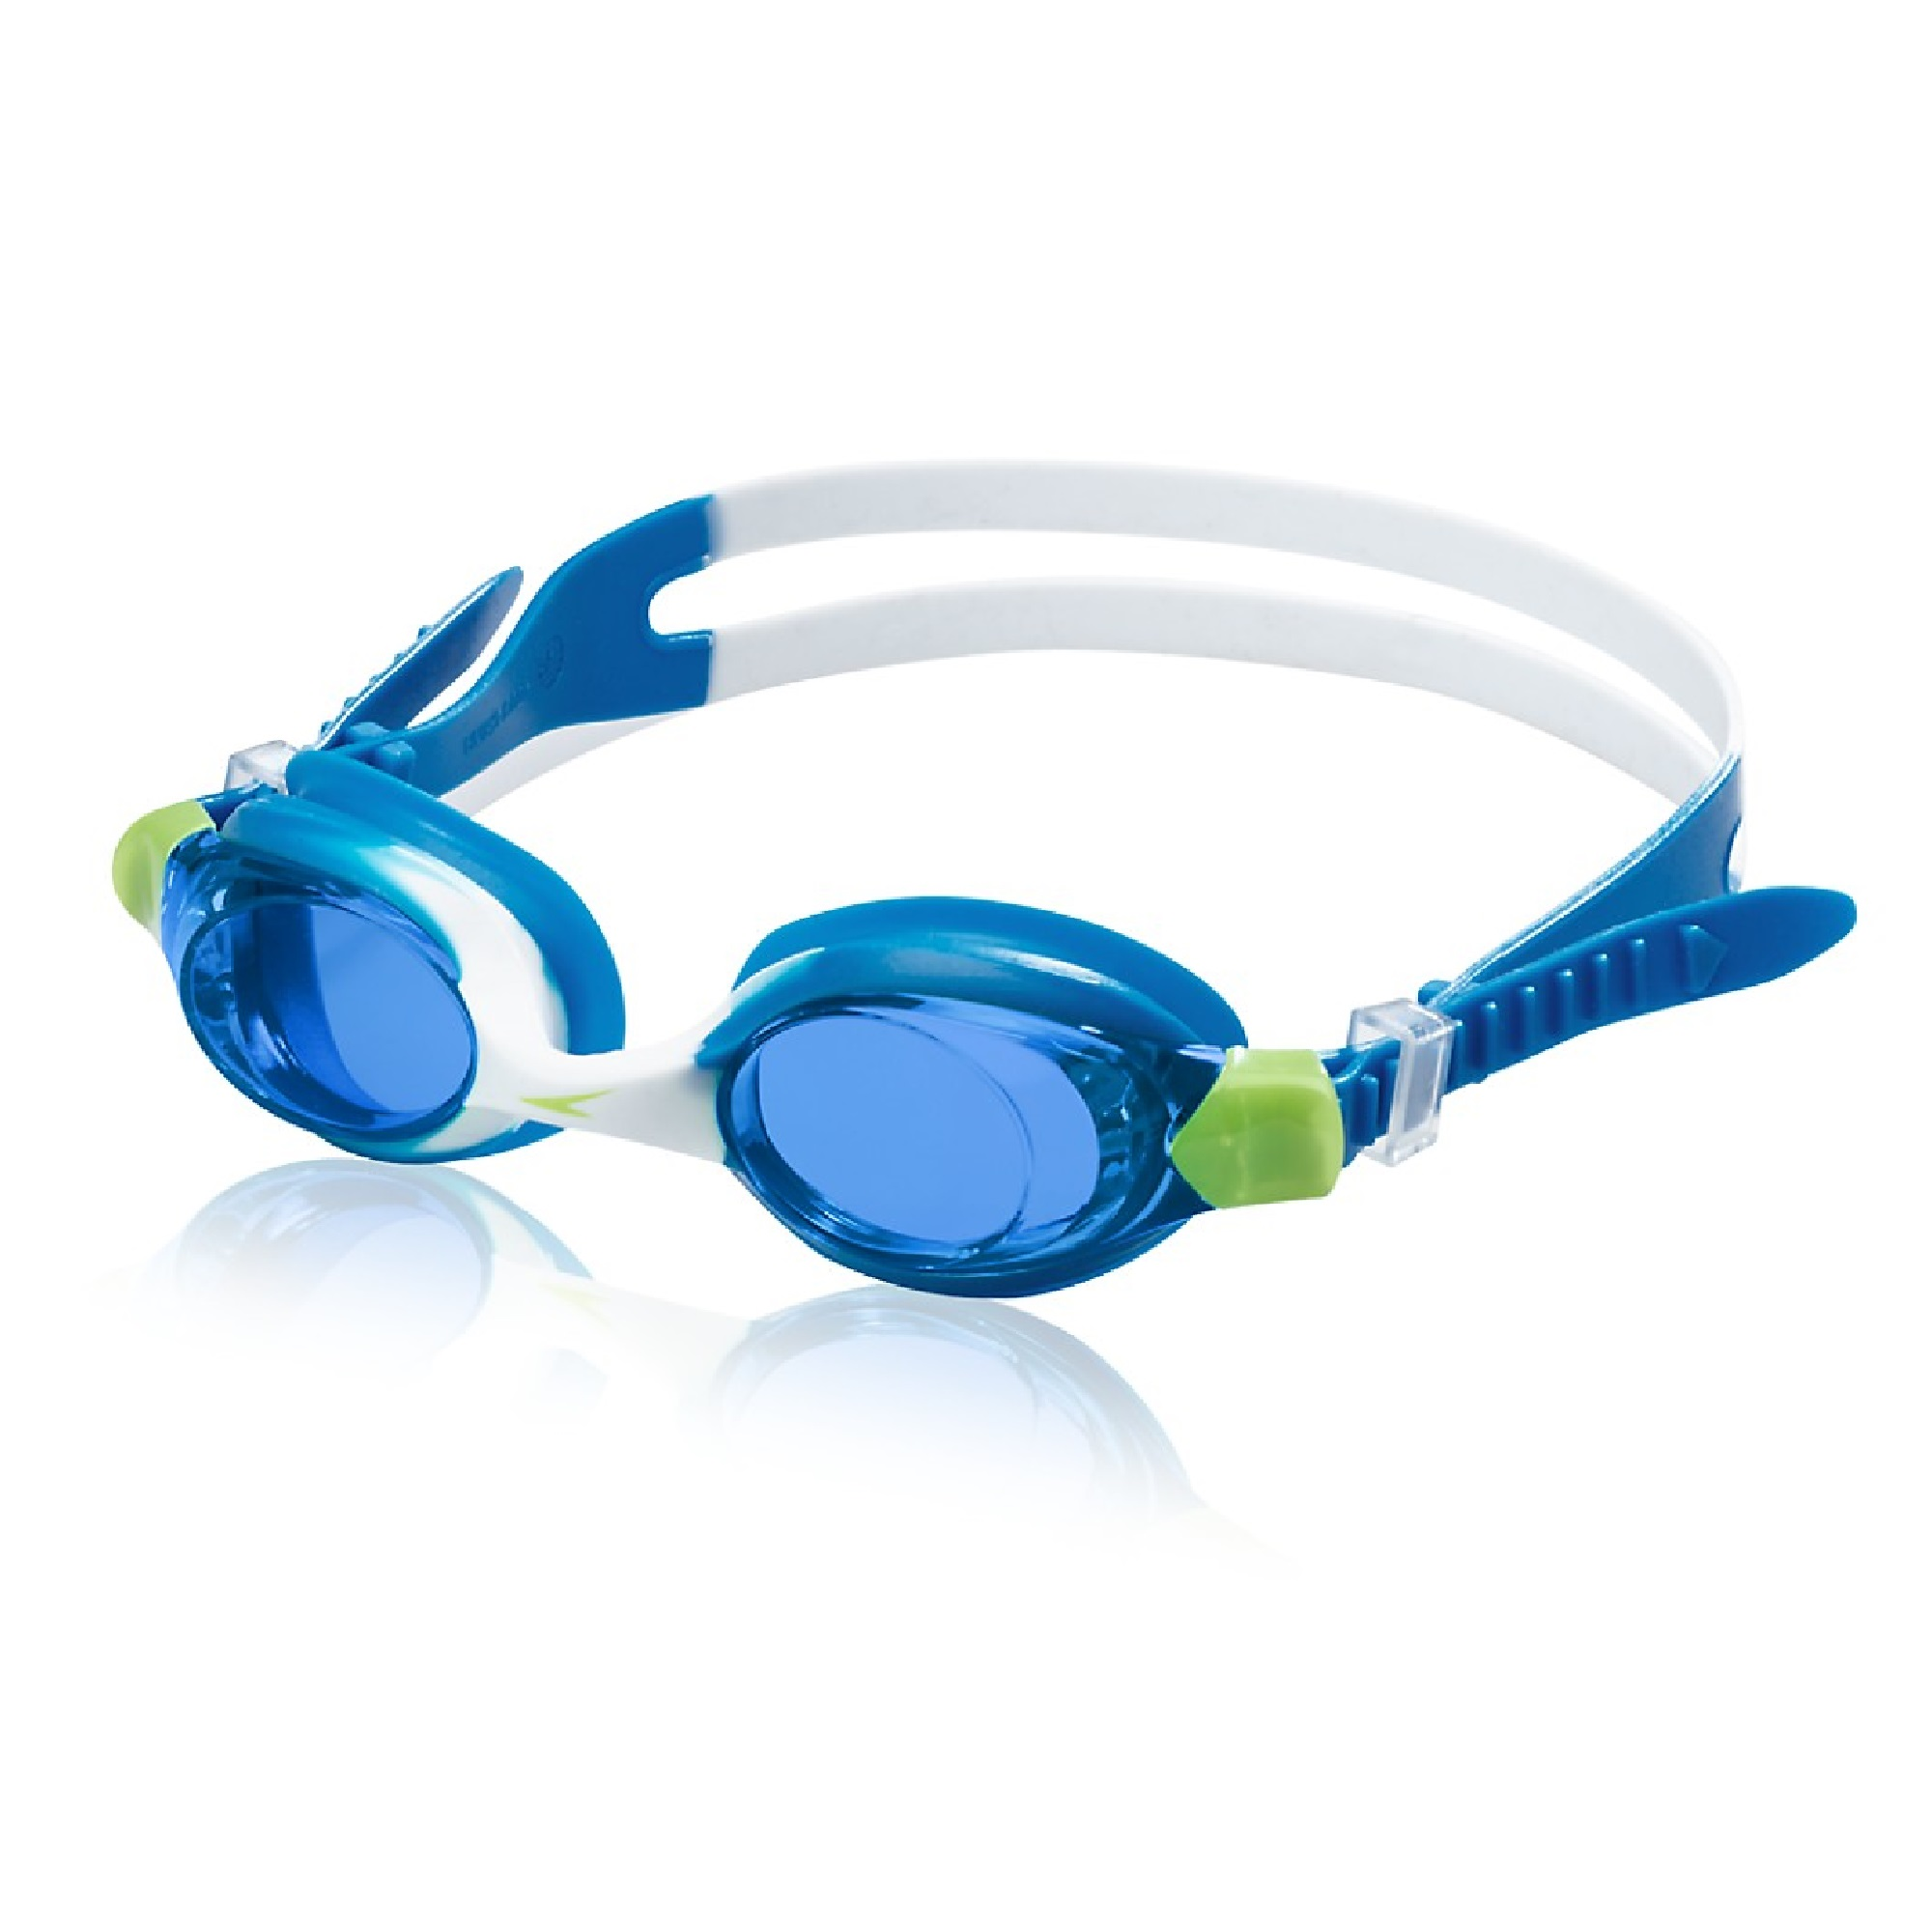 Speedo Kids Skoogles Goggle Kids Recreational Swim Goggle Blue Oceans by Speedo